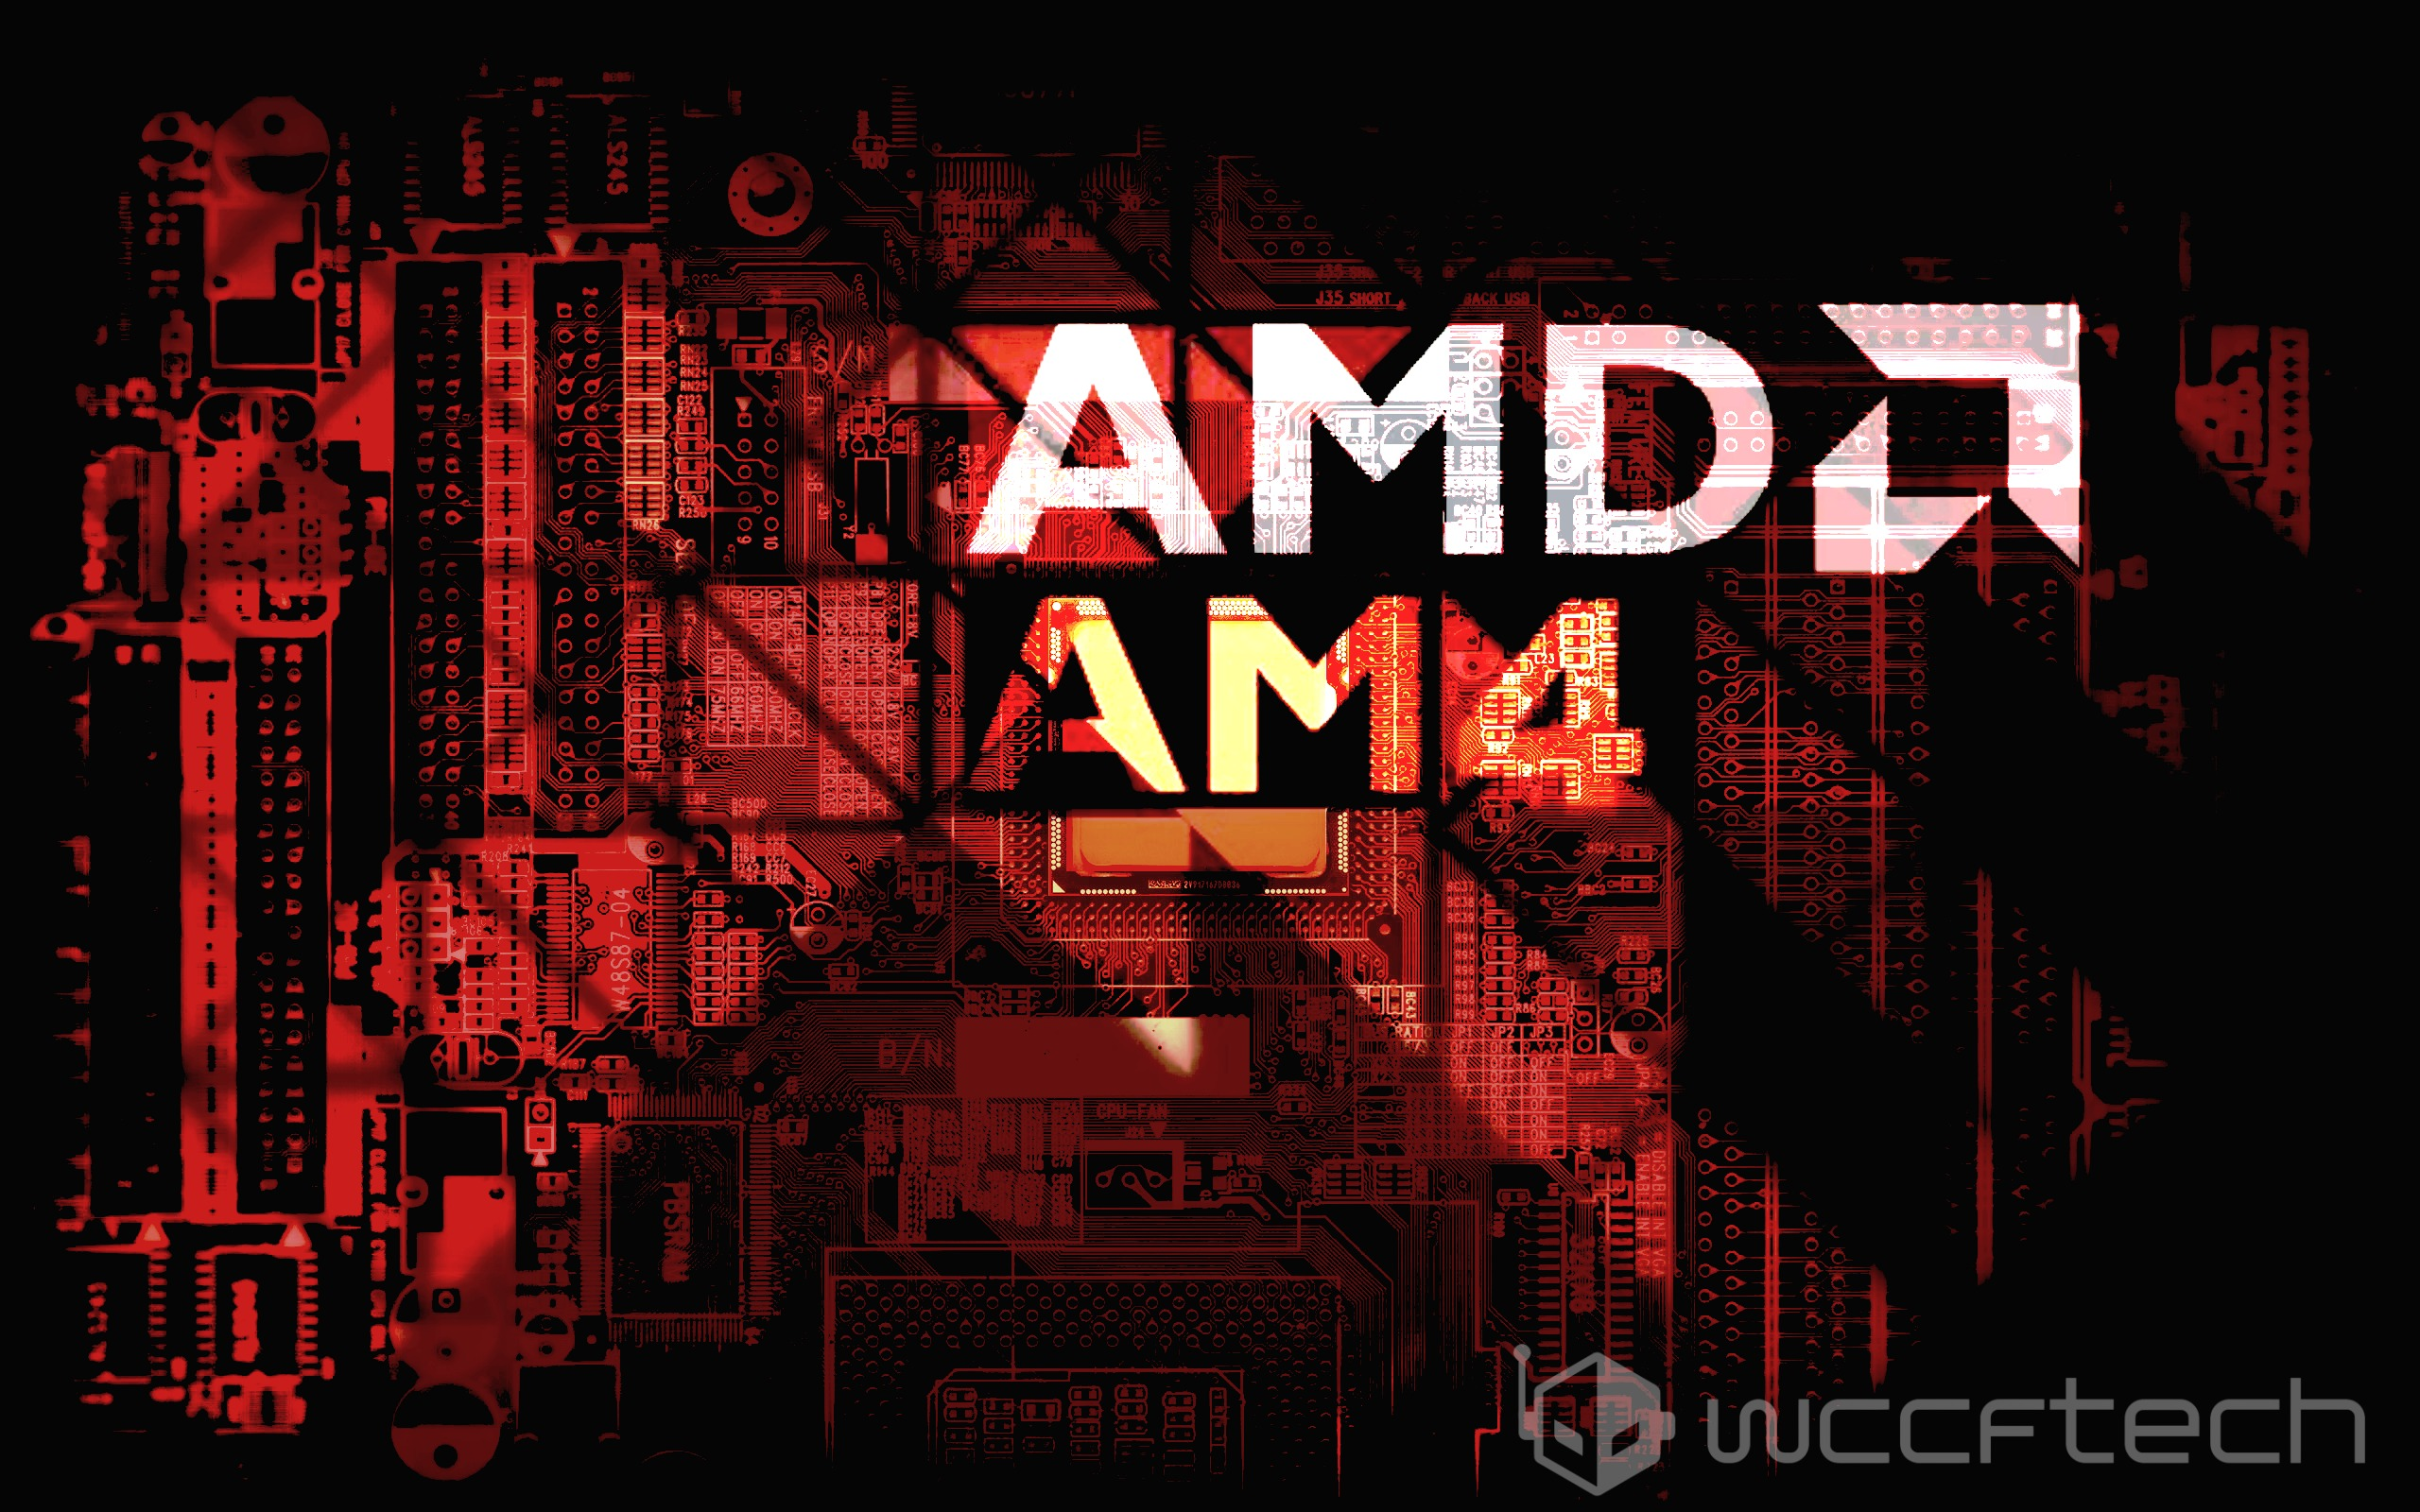 Amd Ryzen X370 Amp B350 Asus Motherboards Leaked Launching February 24th